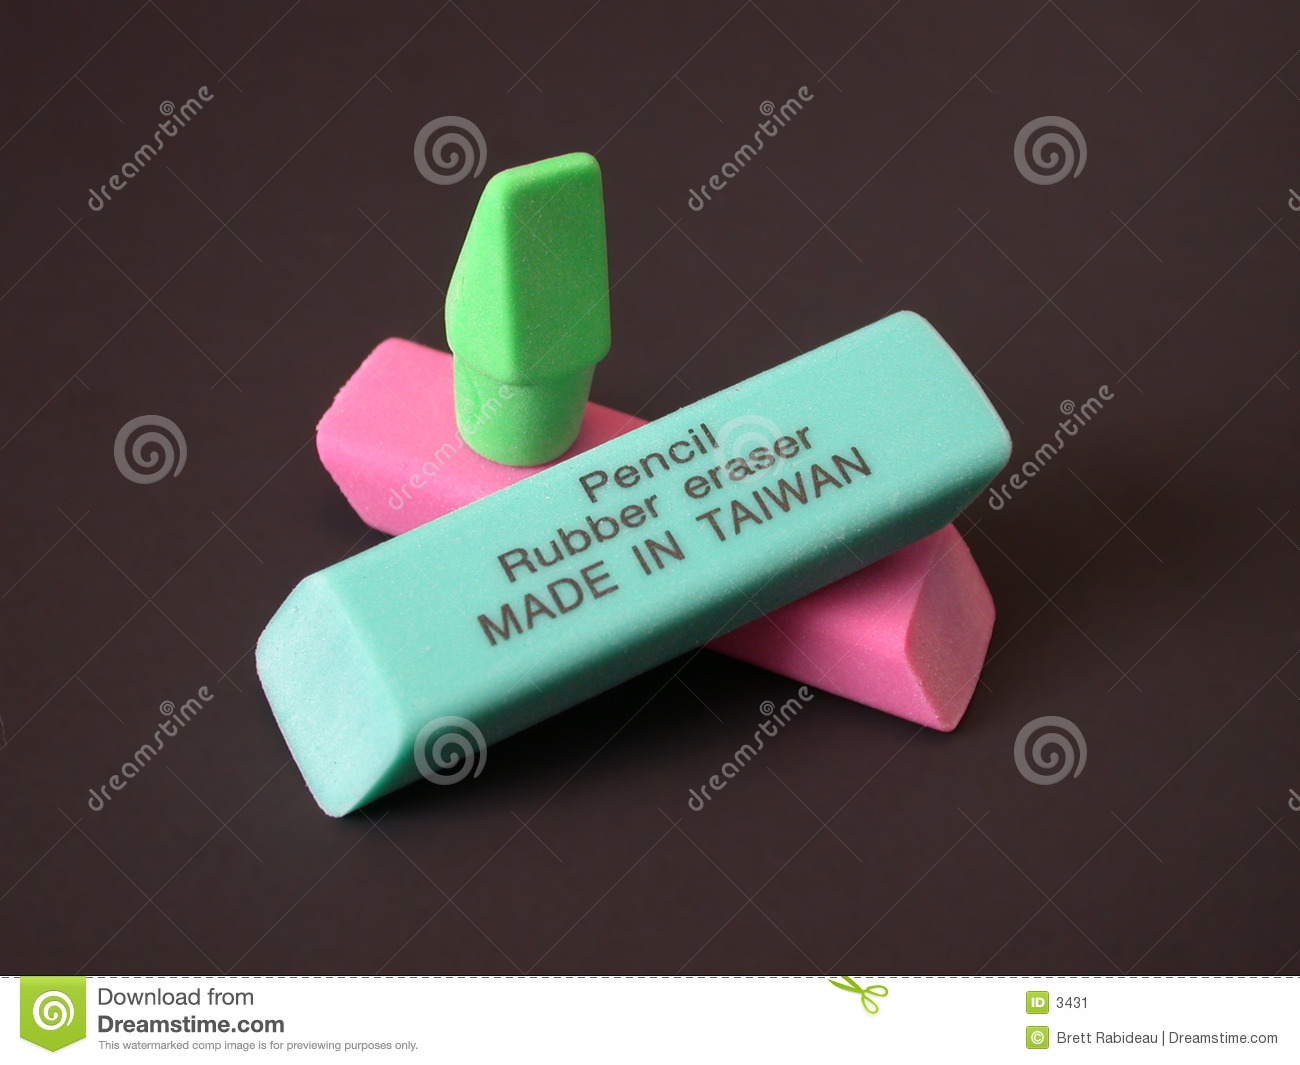 Rubber Erasers - Made in Taiwan